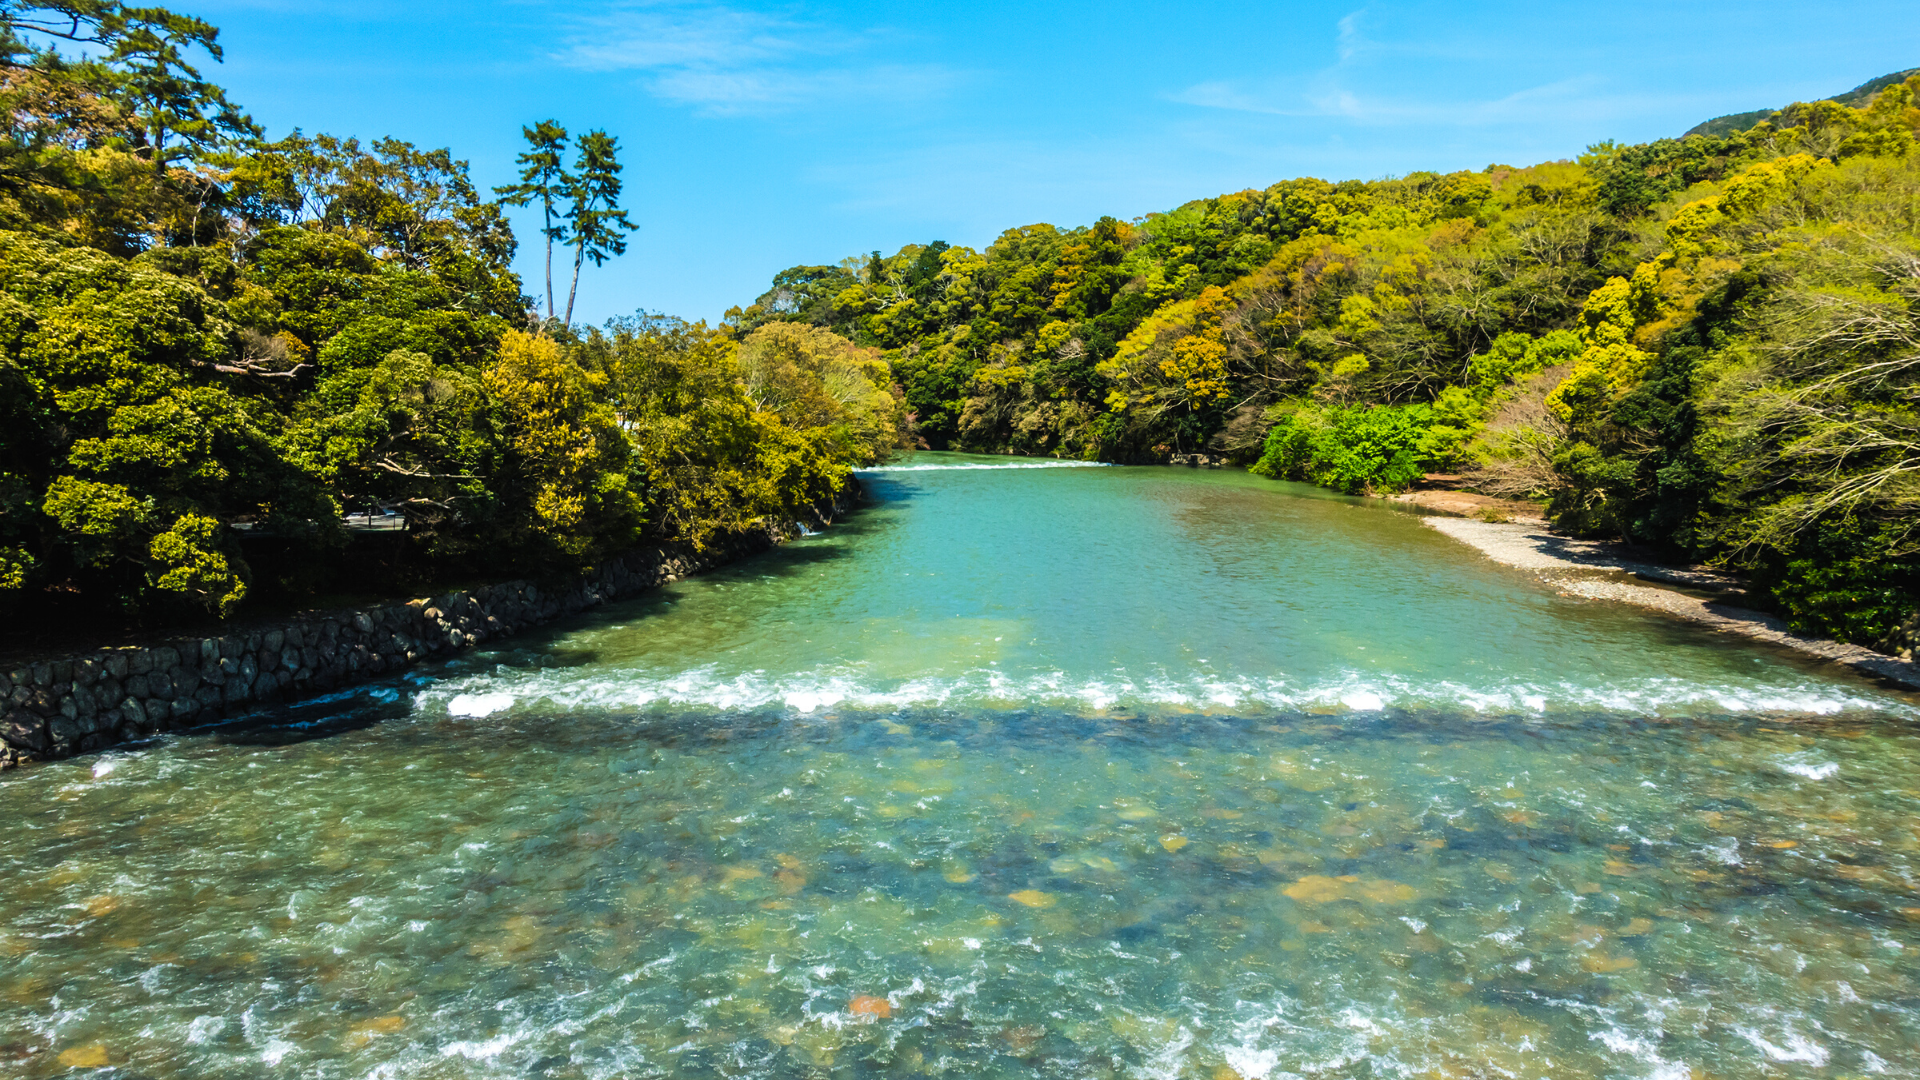 20 Day Trips from Tokyo to get in touch with nature